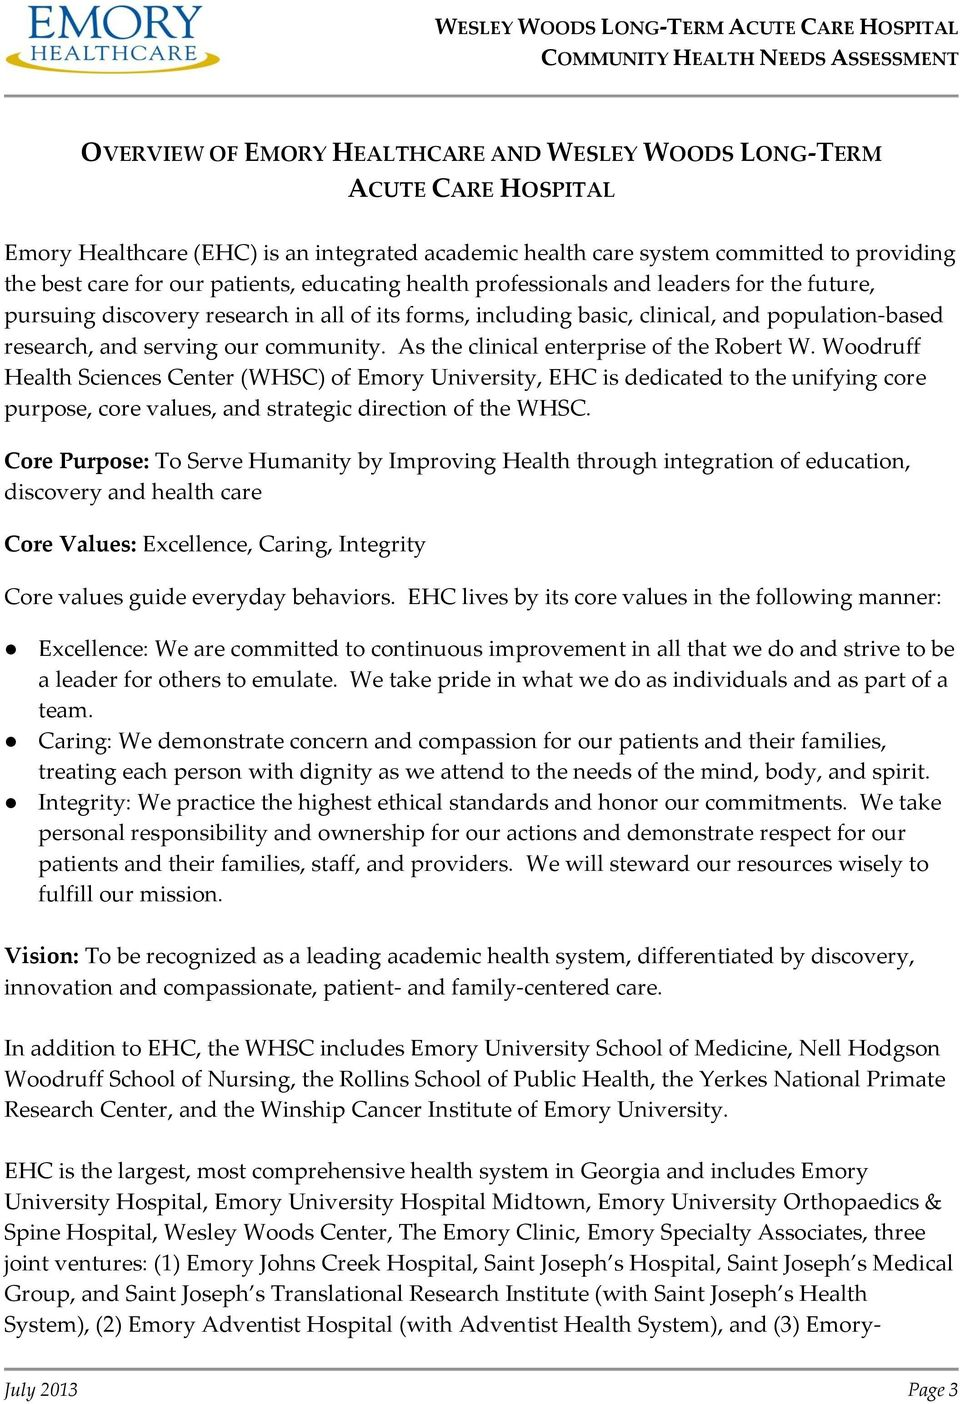 As the clinical enterprise of the Robert W. Woodruff Health Sciences Center (WHSC) of Emory University, EHC is dedicated to the unifying core purpose, core values, and strategic direction of the WHSC.